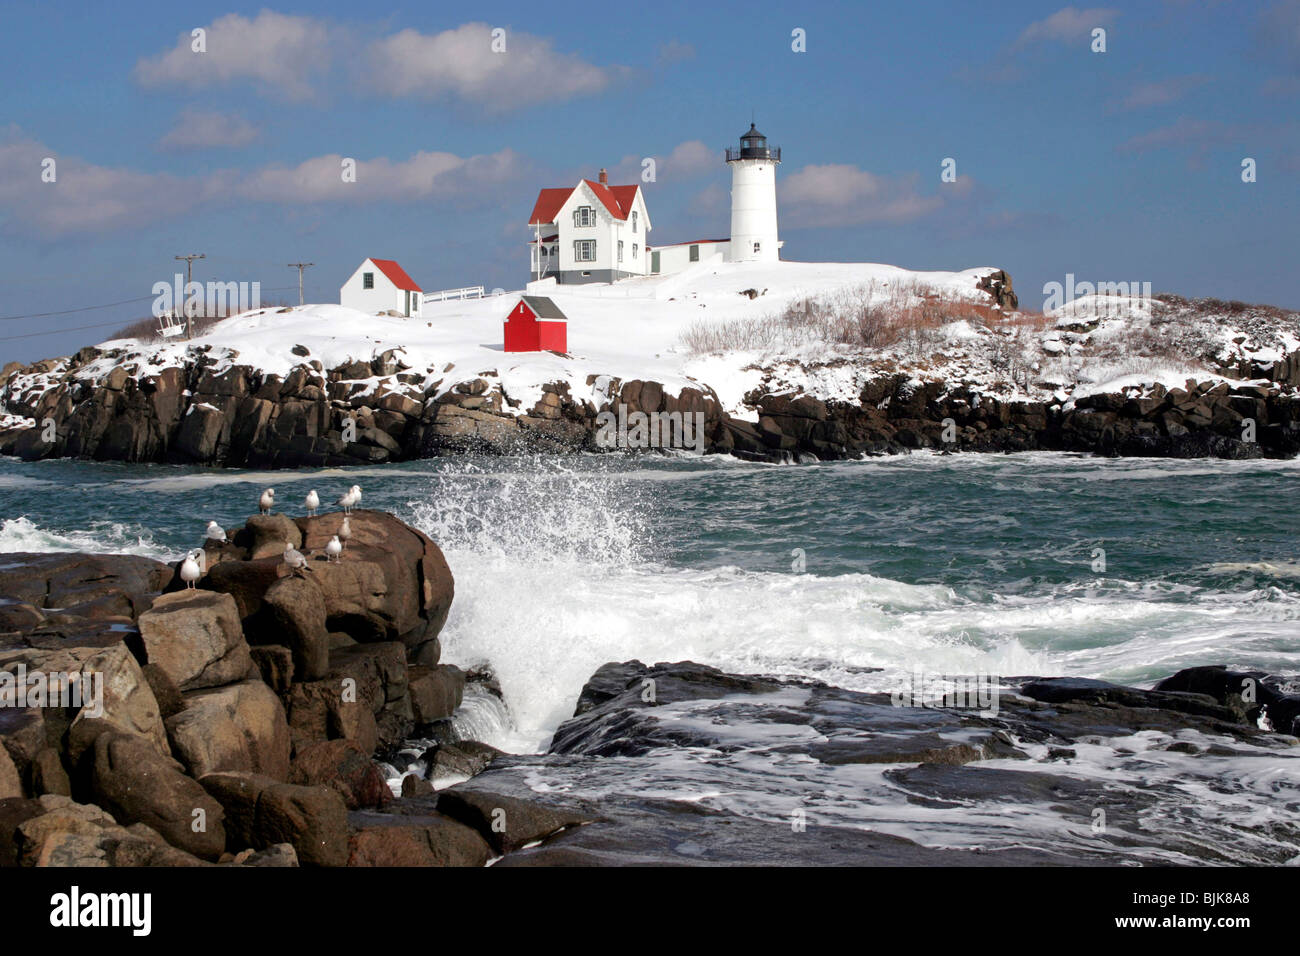 Pleasing Nubble Light Lighthouse Winter Snow York Maine New Download Free Architecture Designs Scobabritishbridgeorg